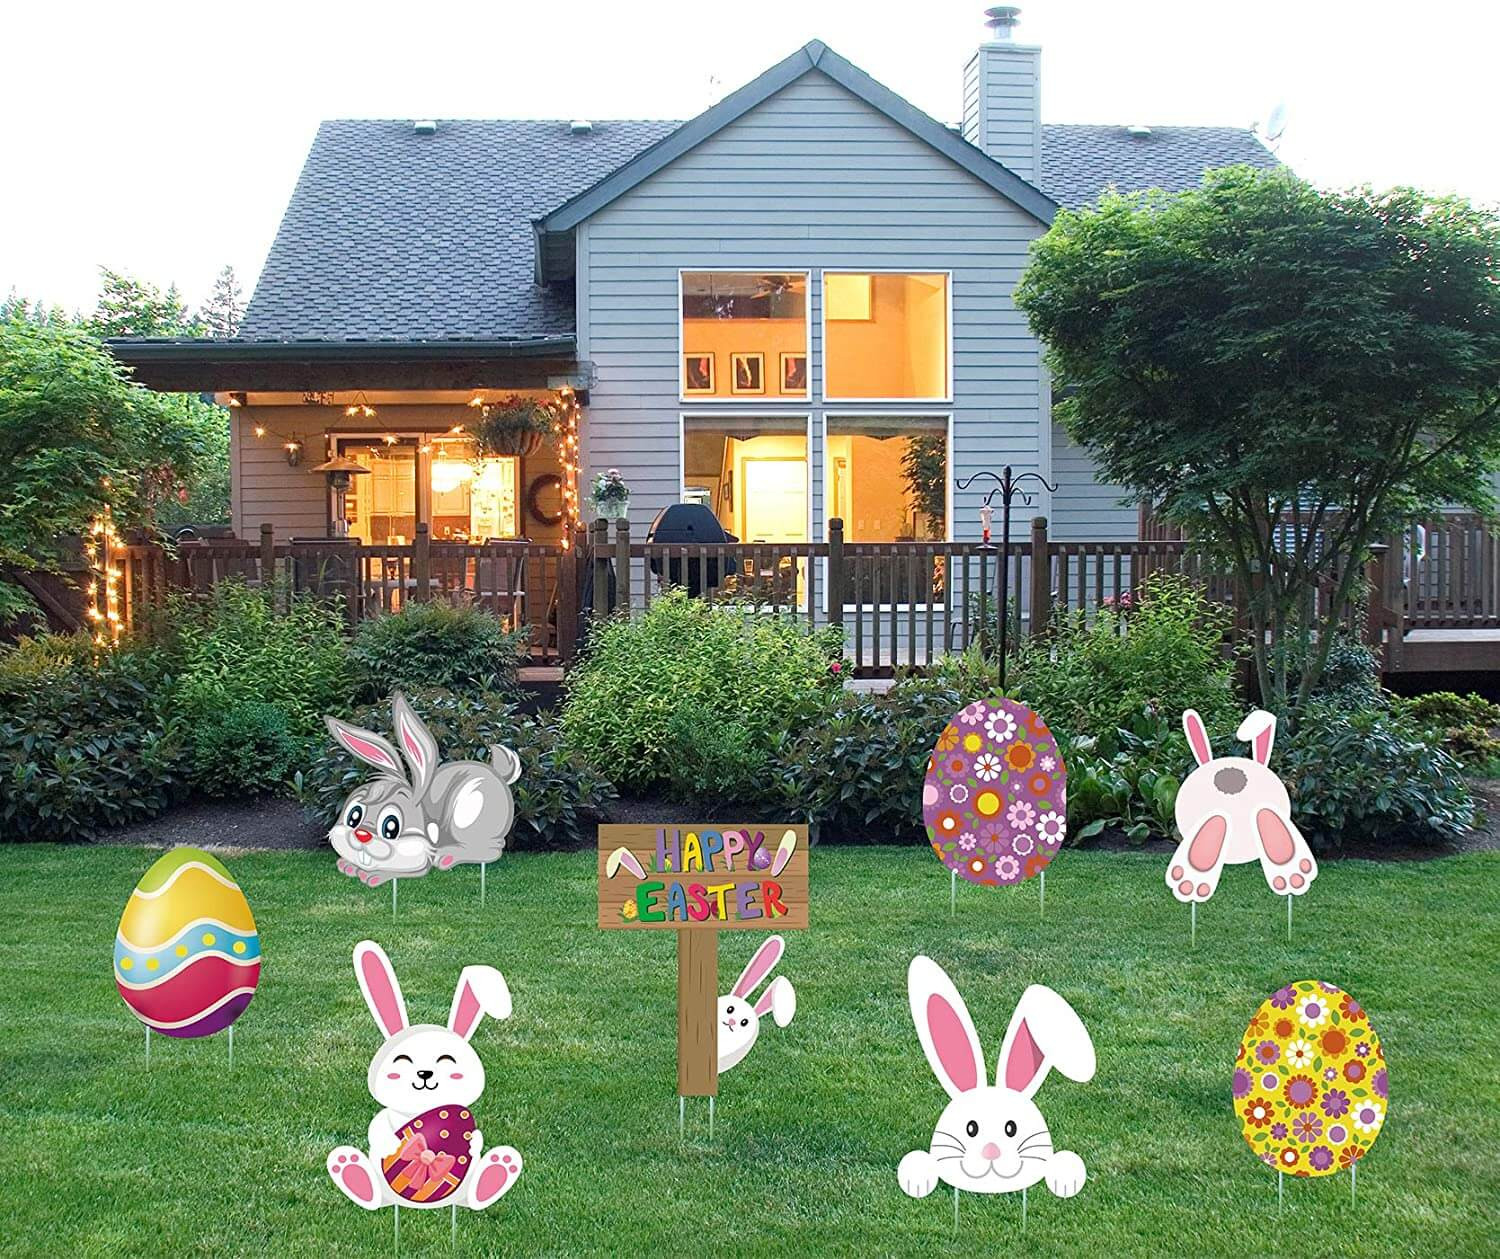 Easter Yard Signs Decorations Outdoor Bunny